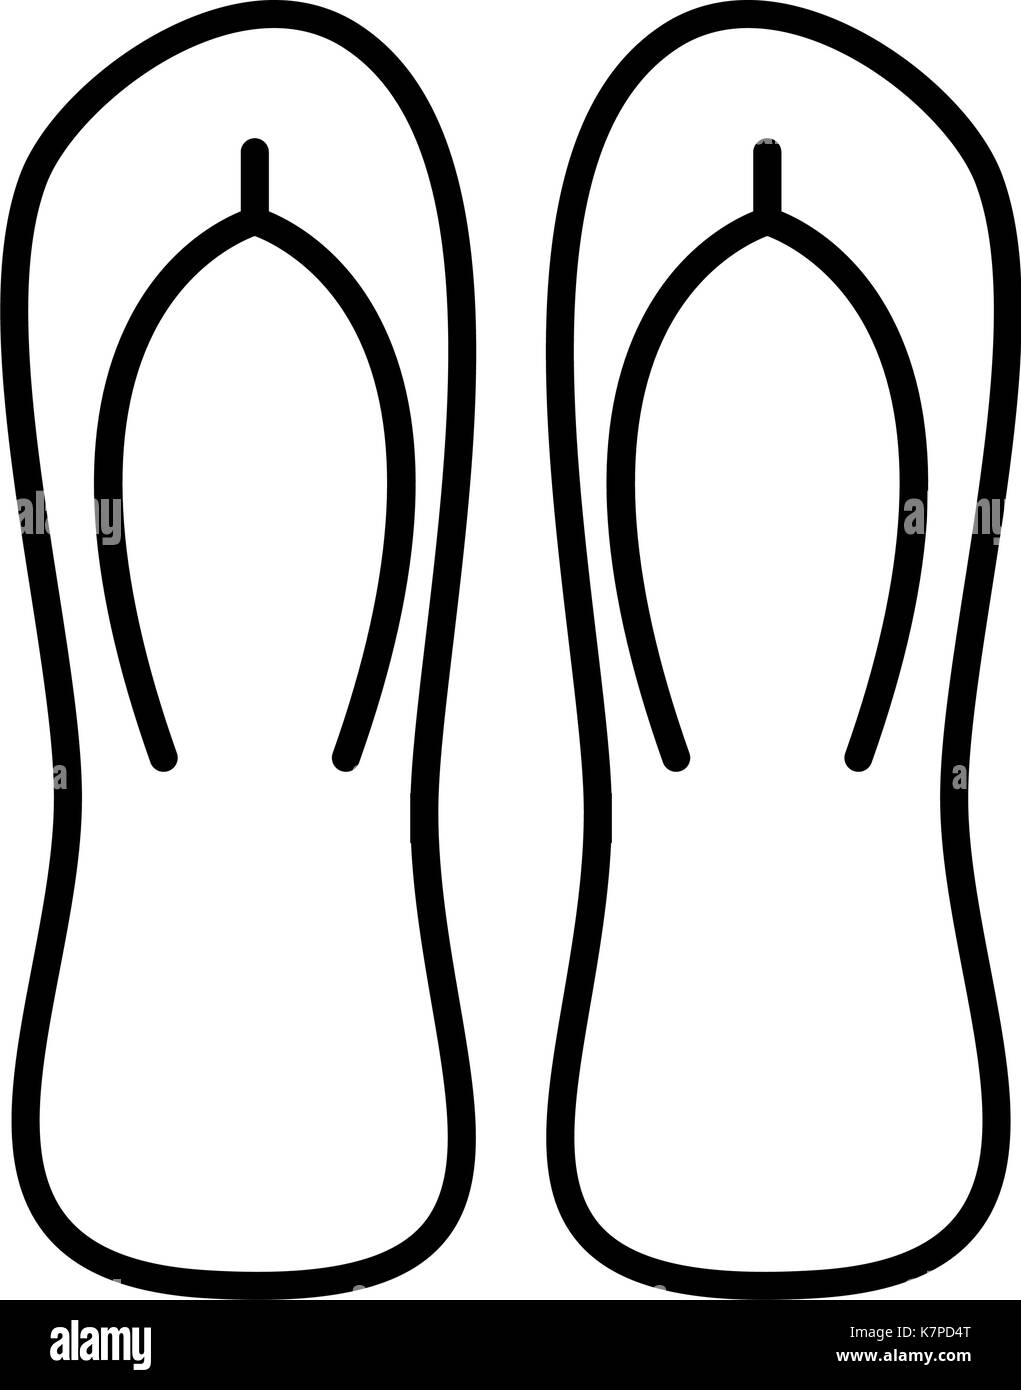 cbc3b8e21d9cf1 Flip Flop Slippers Black and White Stock Photos   Images - Alamy